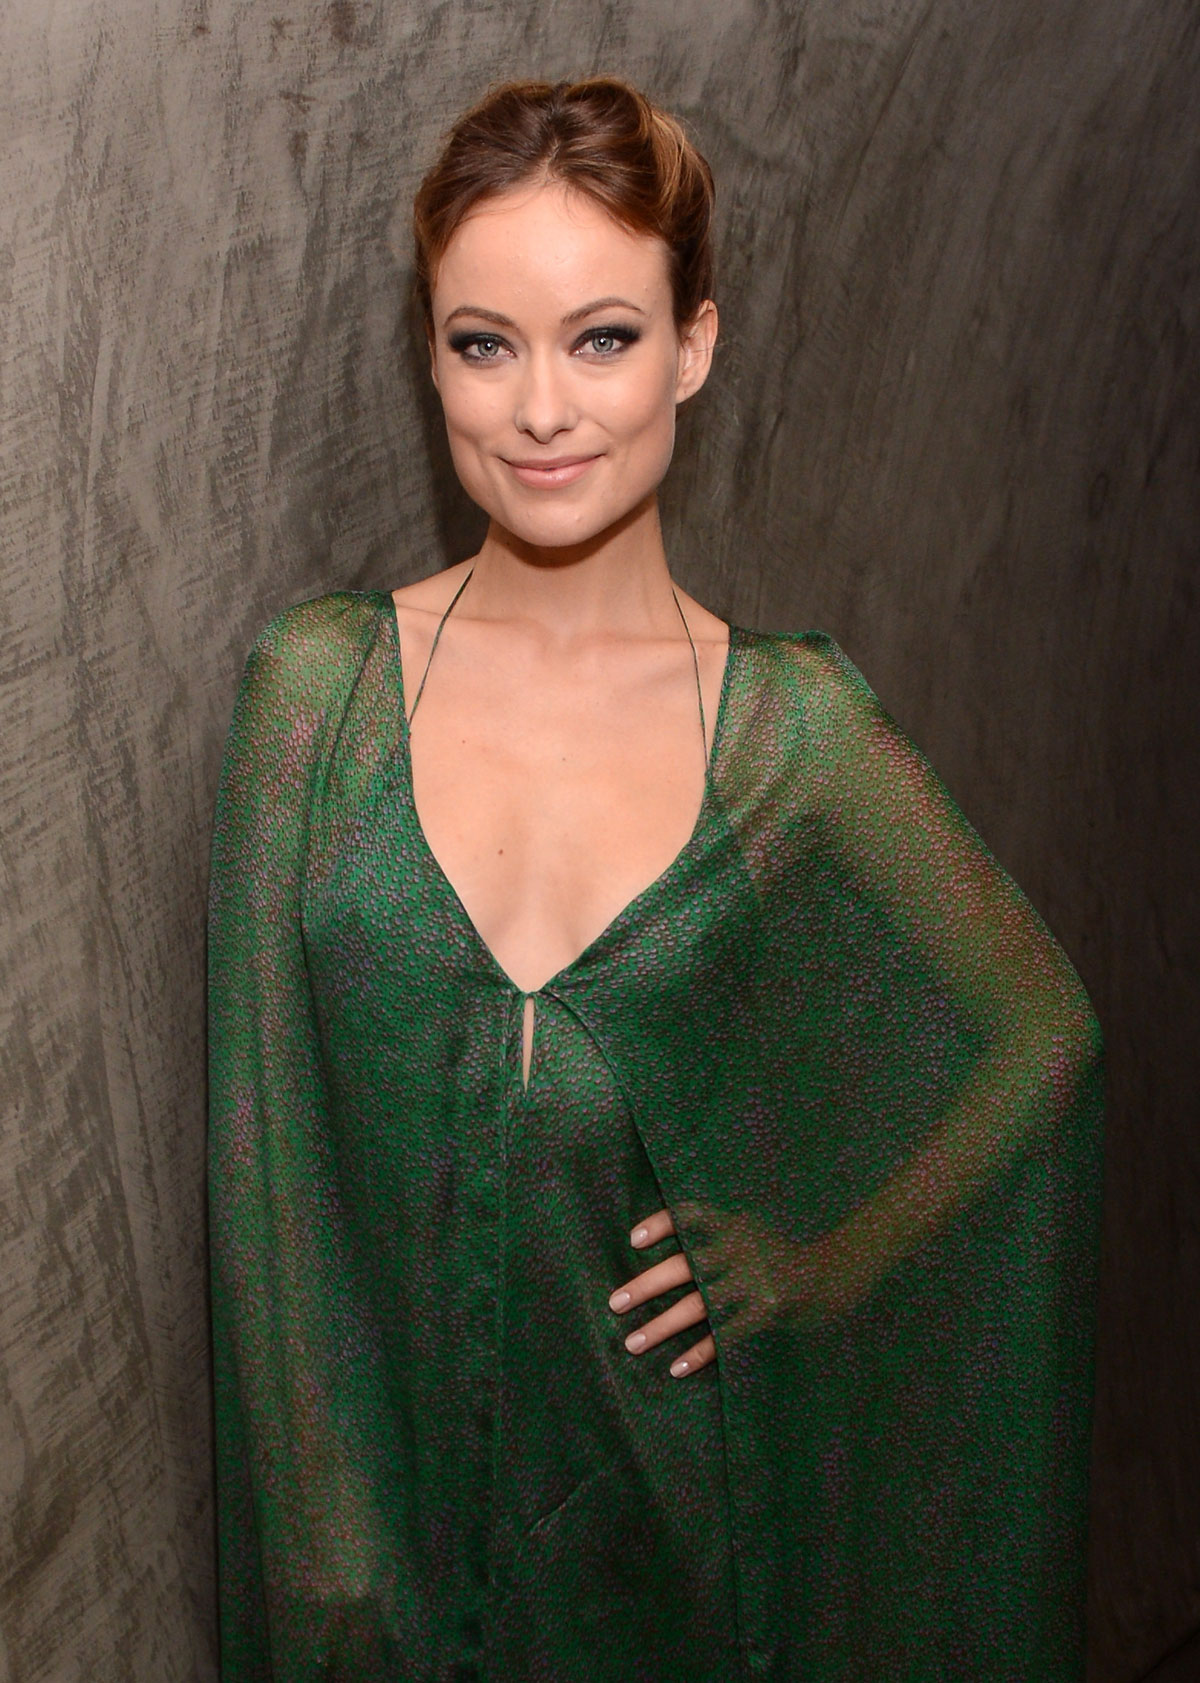 OLIVIA WILDE at Butter Screening After Party in New York - HawtCelebs ... Olivia Wilde